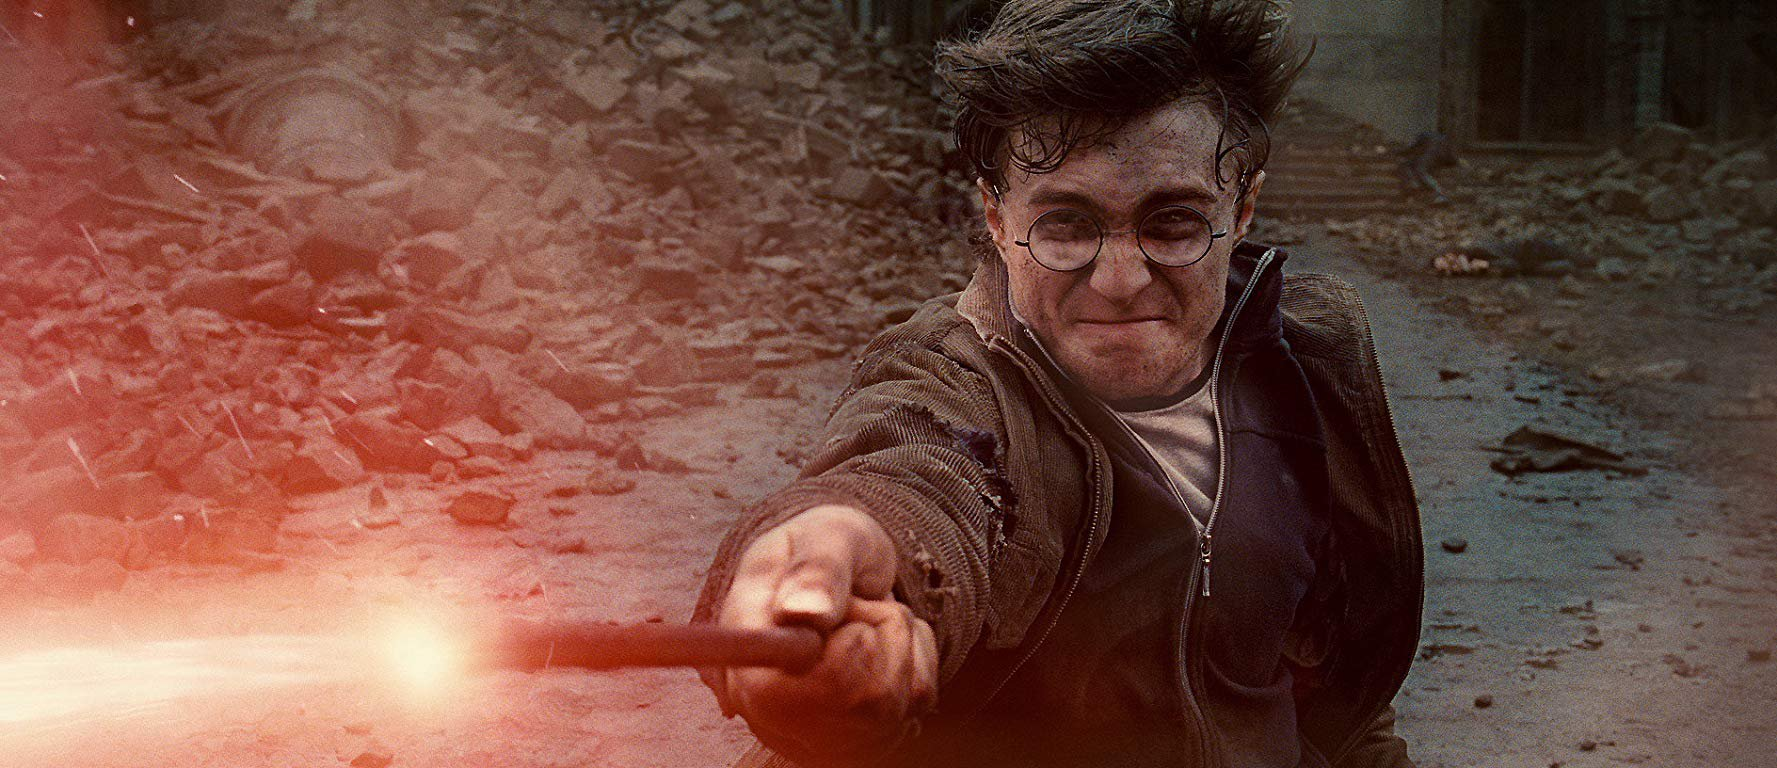 Wizarding World of Harry Potter introducing Hagrid ride and it looks out of this world